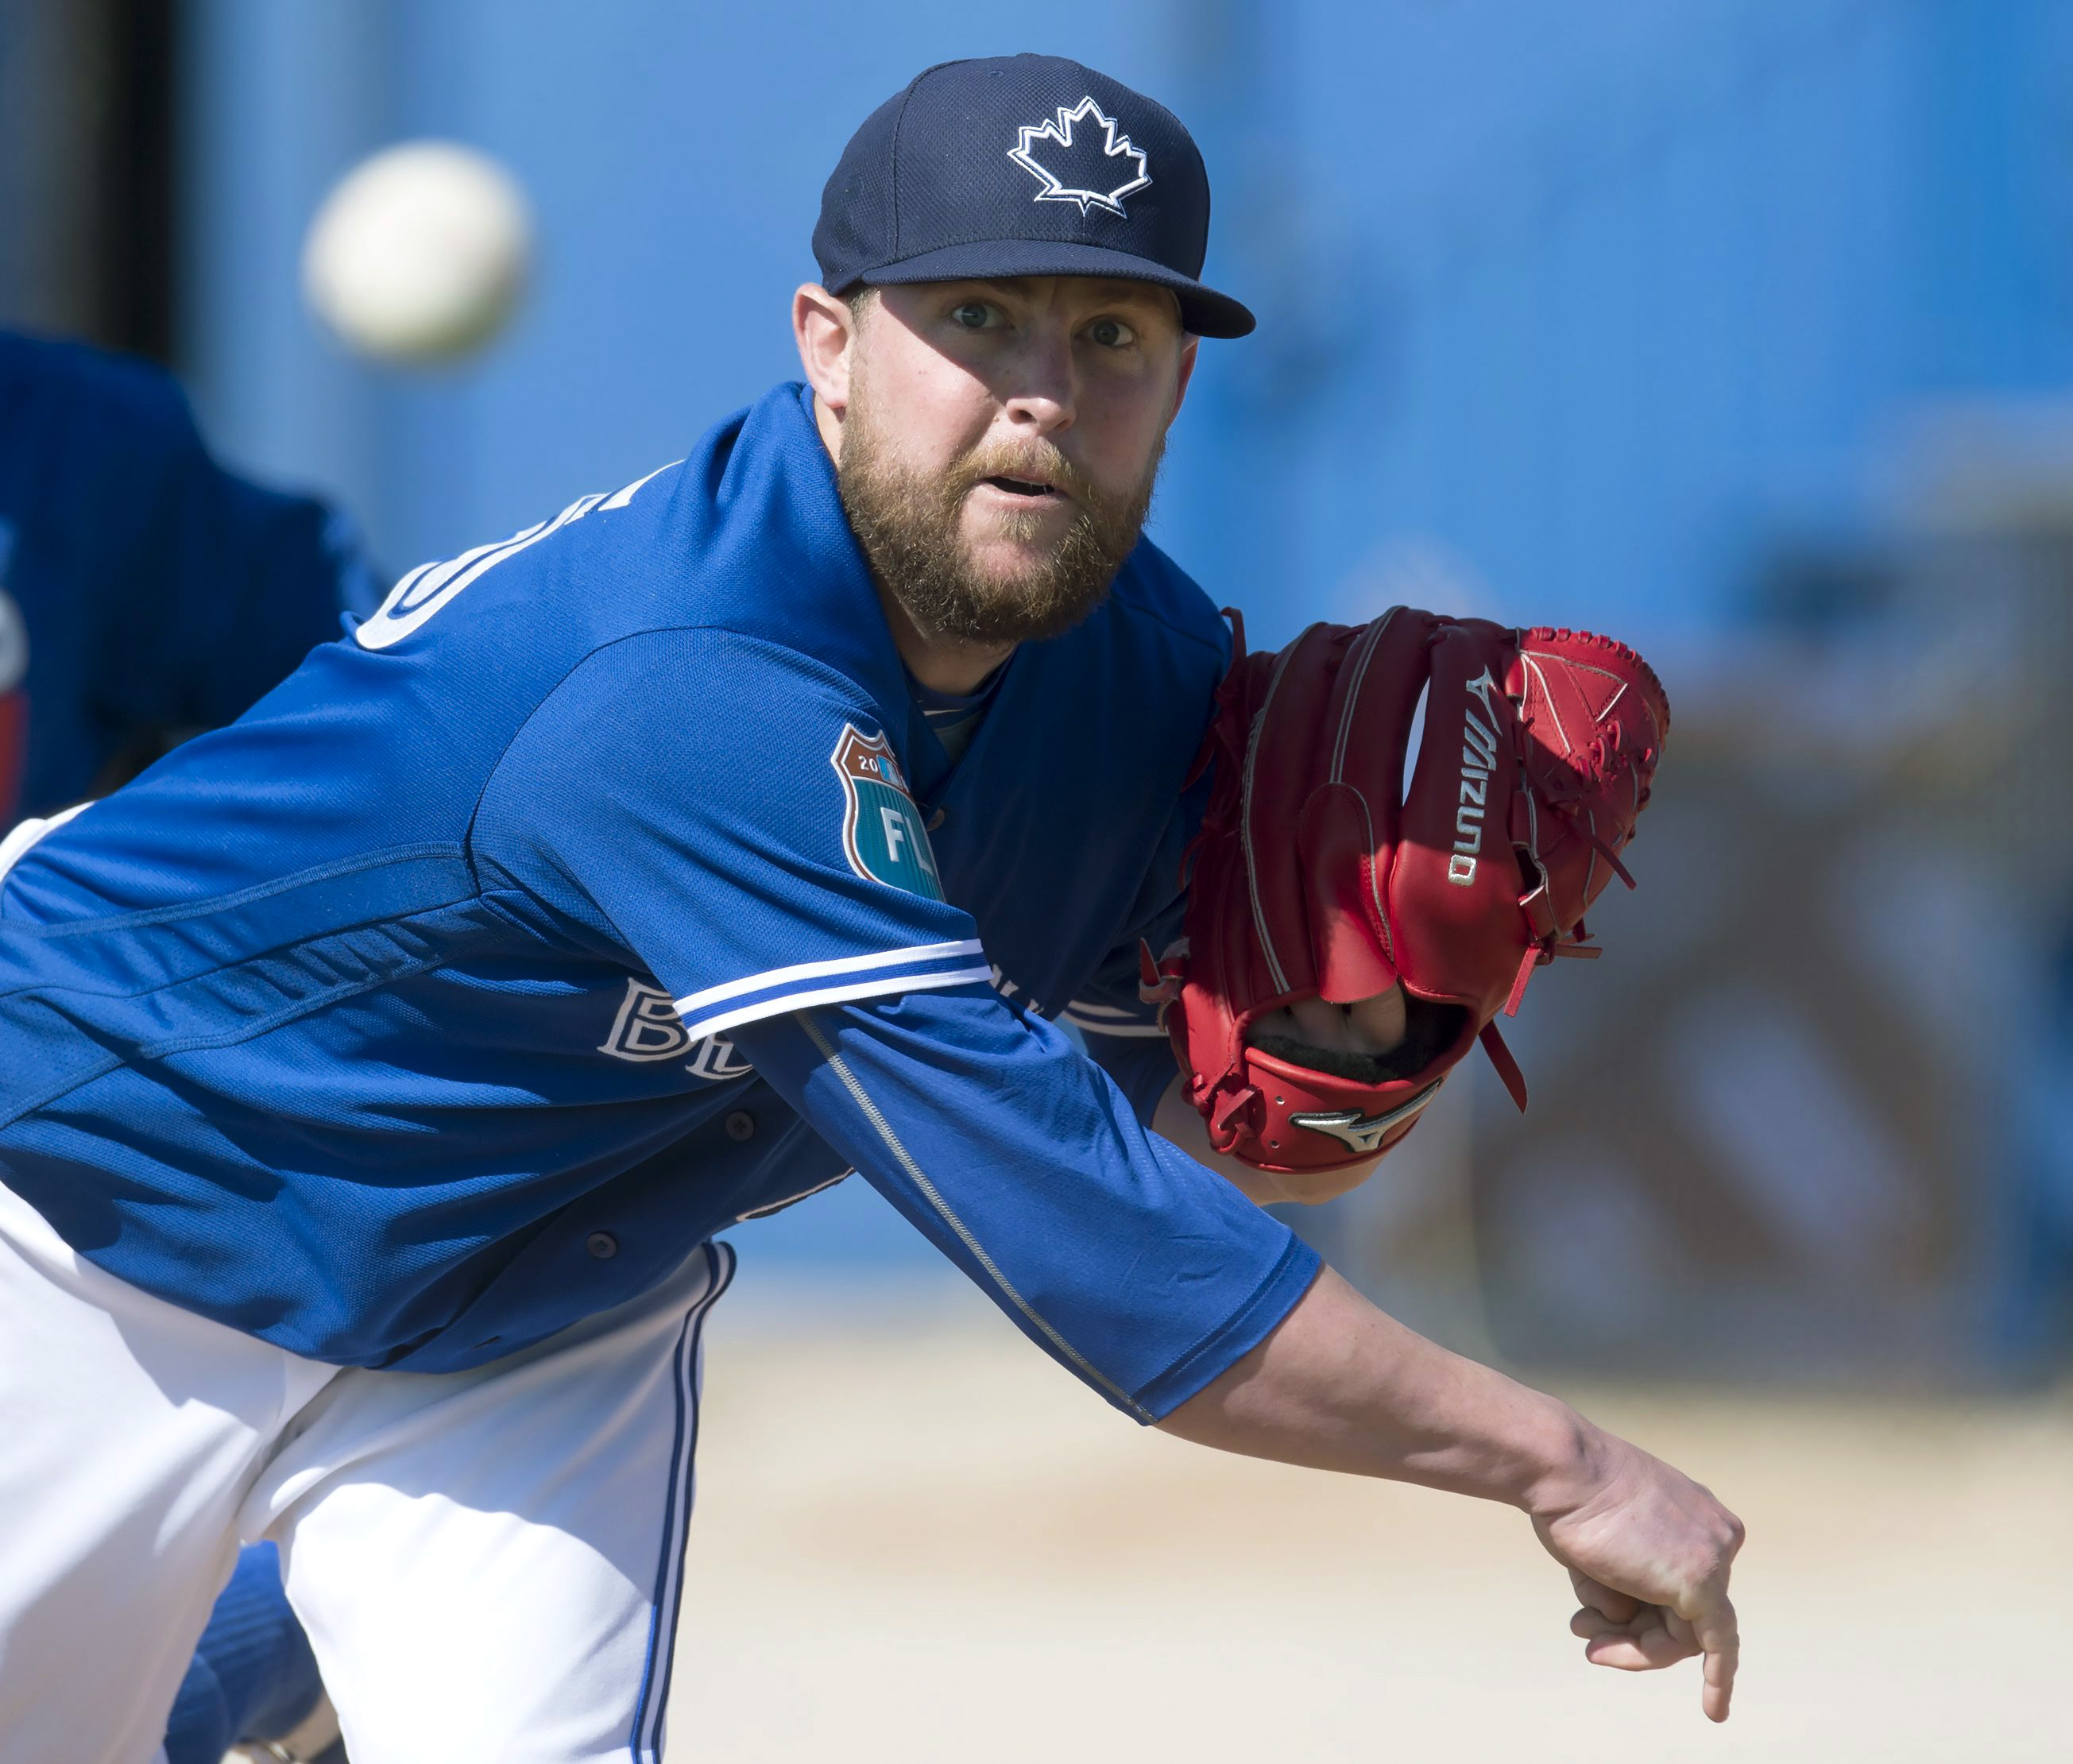 FILE - In this  Feb. 25, 2016, file photo, Toronto Blue Jays pitcher Drew Storen pitches during baseball spring training in Dunedin, Fla. Struggling relief pitcher Storen had been designated for assignment by the Blue Jays. (Frank Gunn /The Canadian Press